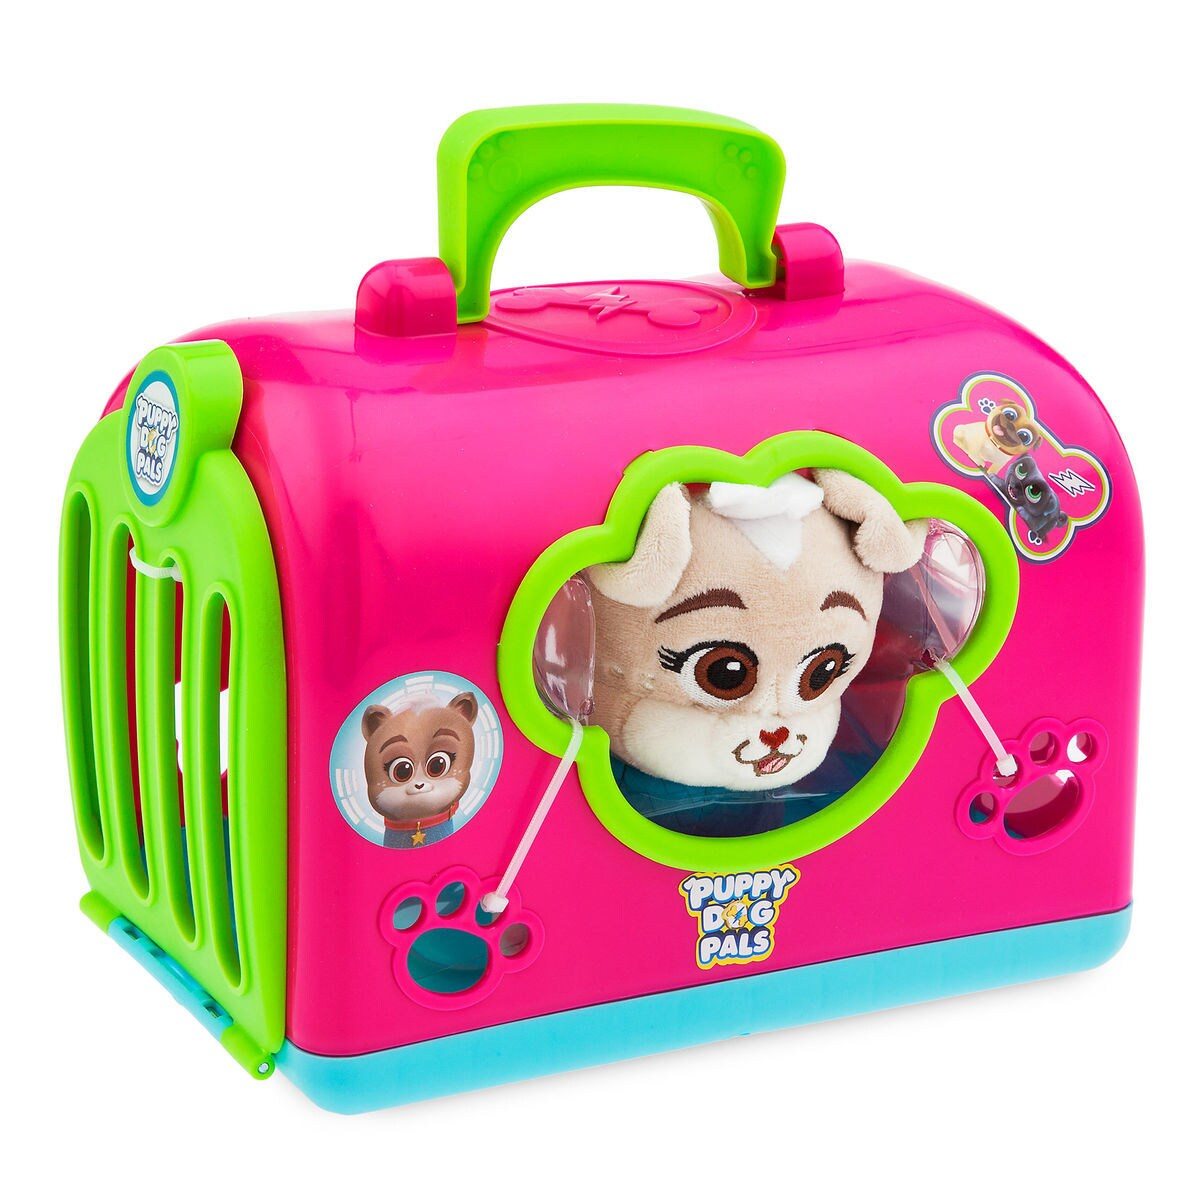 Keia Groom and Go Pet Carrier Play Set - Puppy Dog Pals  8c60f55b3bbef